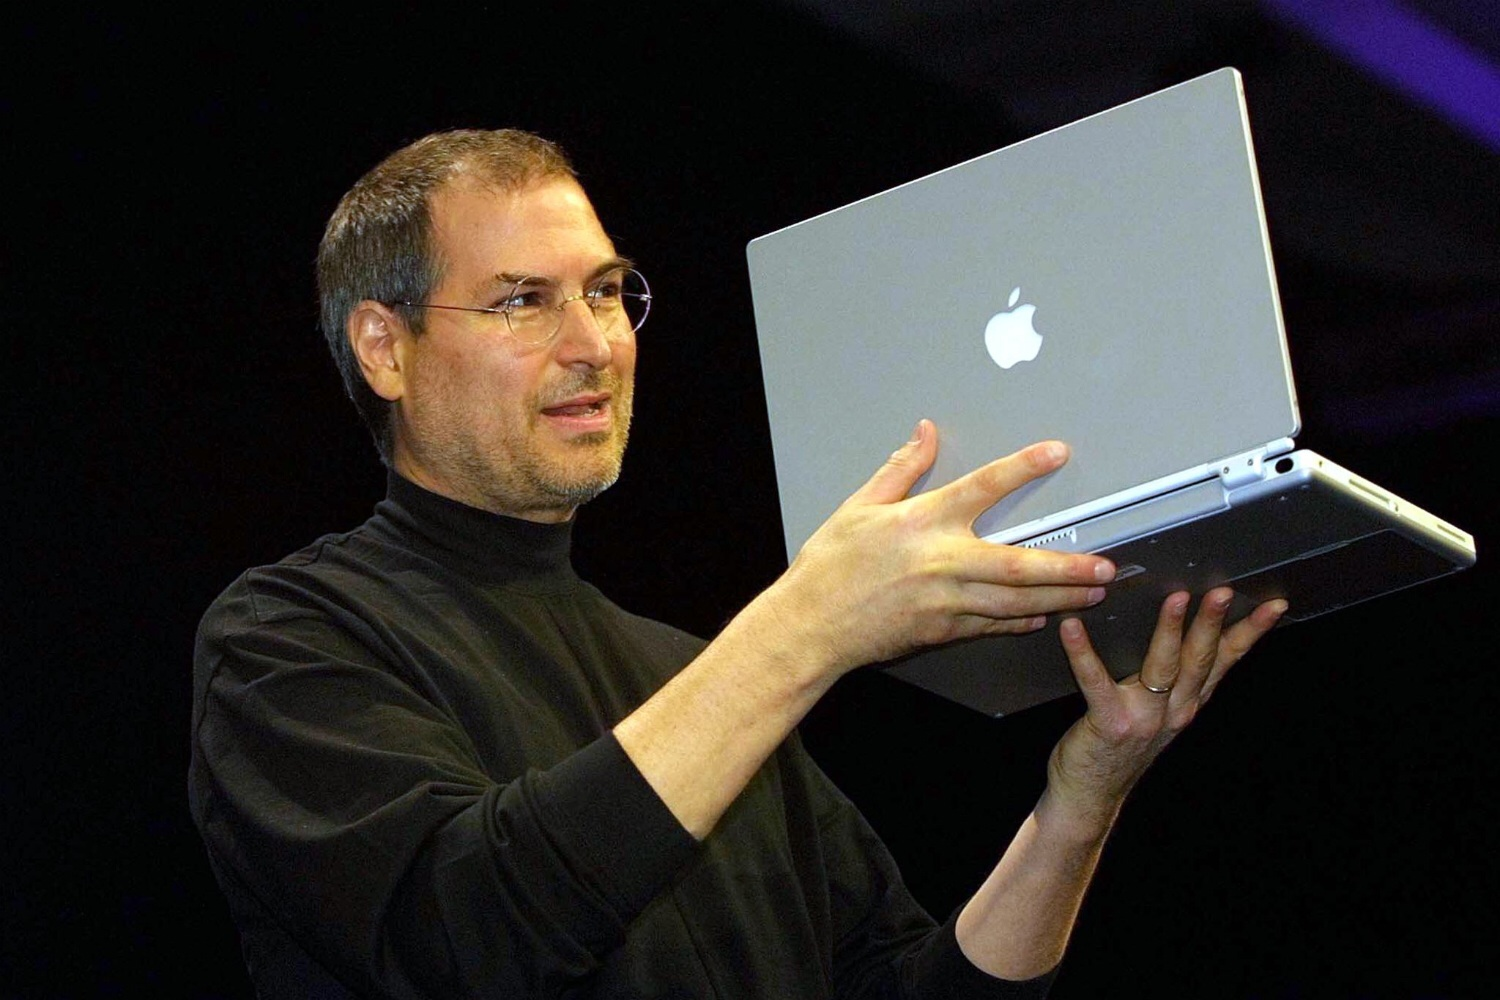 Steve Jobs shows off Apple's PowerBook G4 at Macworld Expo in San Francisco on January 9, 2001